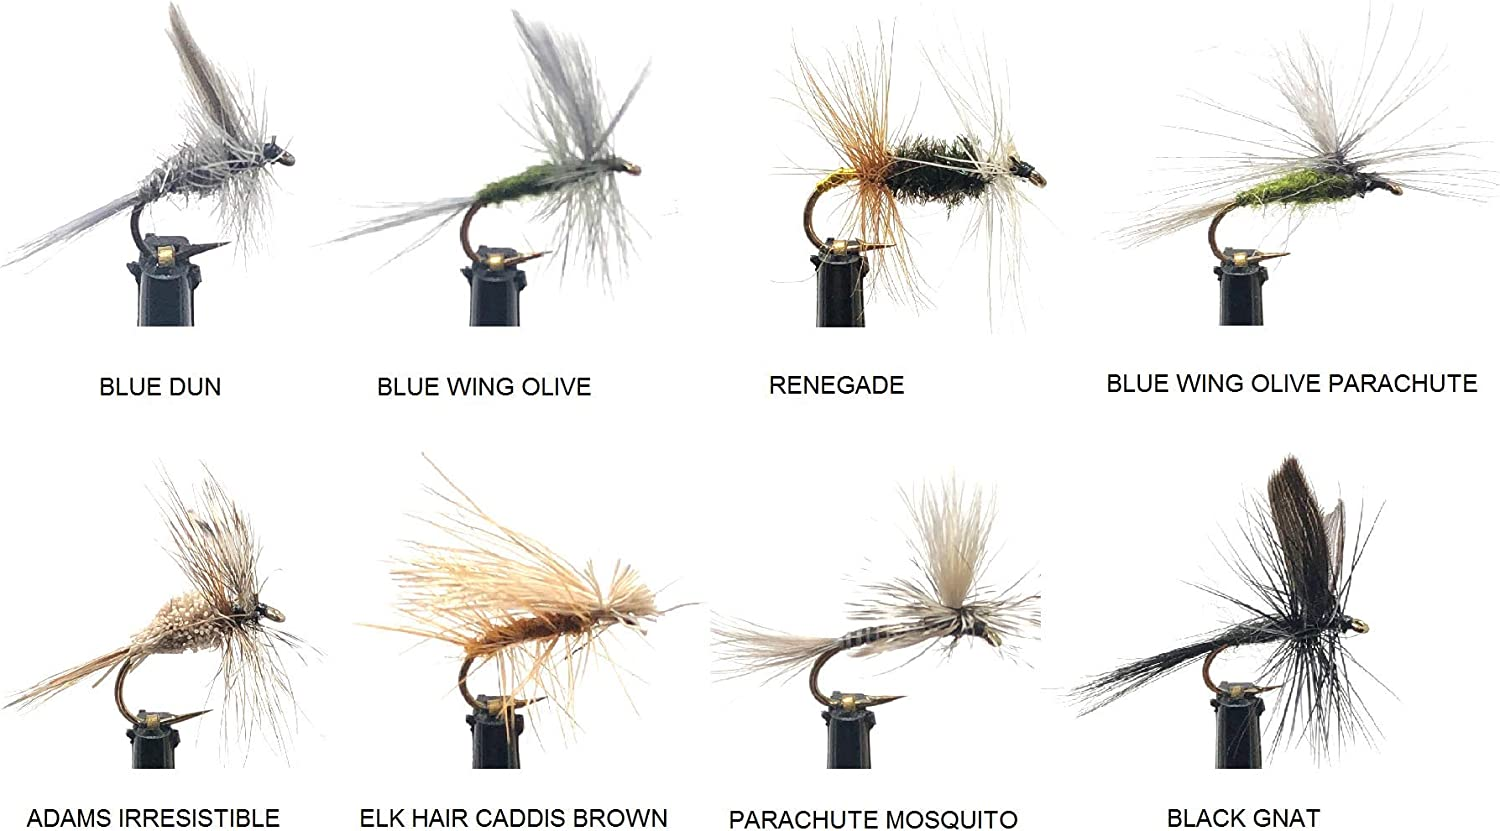 Feeder Creek Fly Fishing Assortment 24 8 Patterns Flies Price reduction New color in Dry